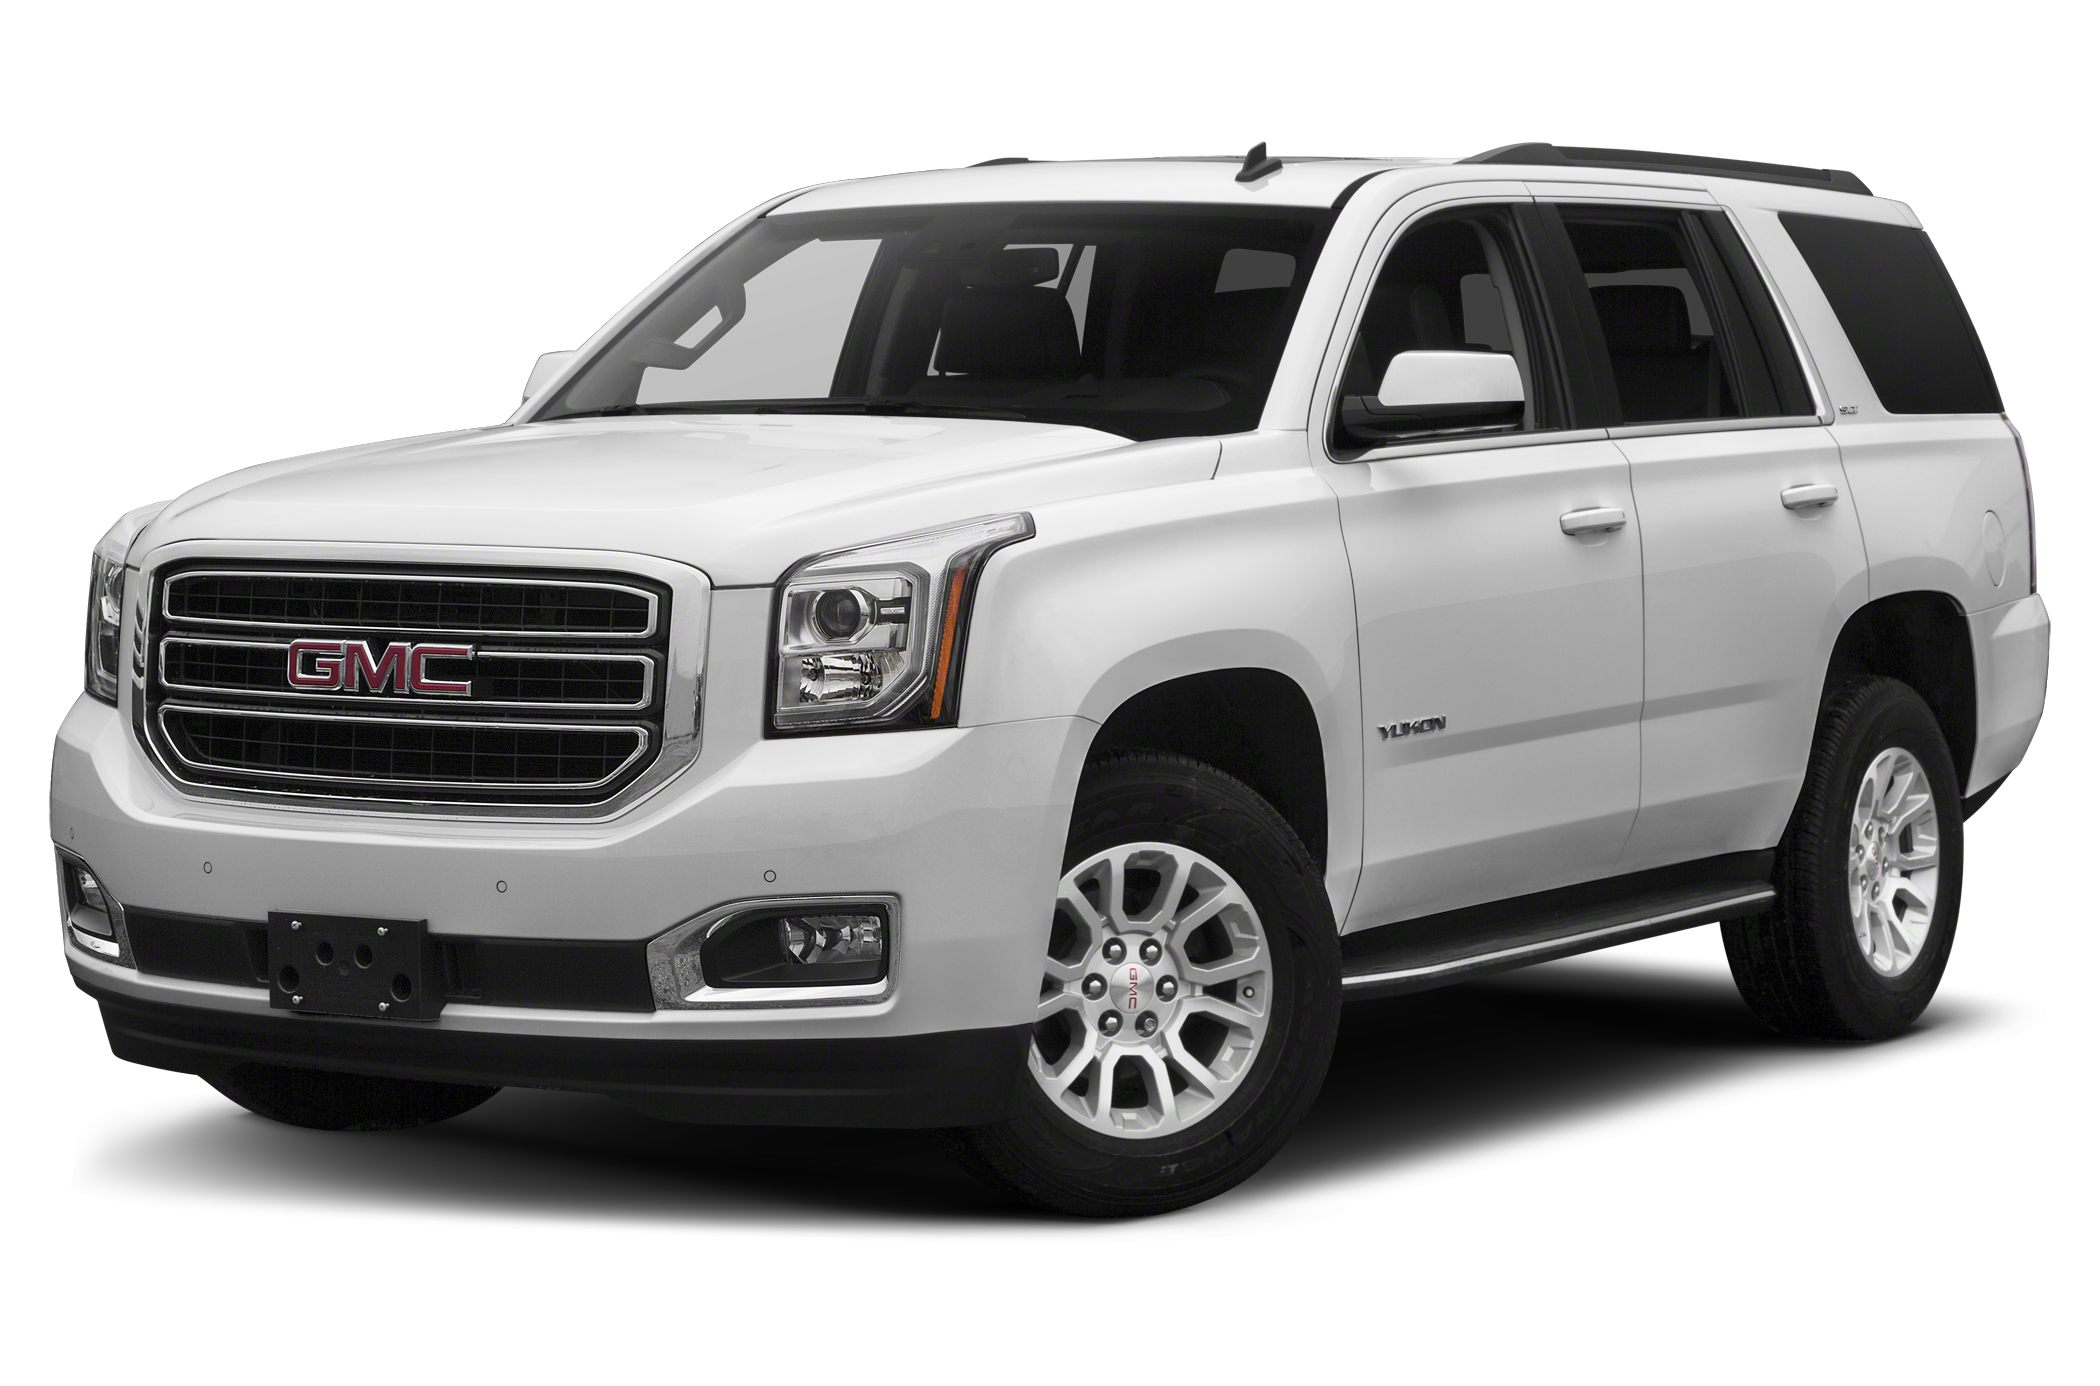 2016 GMC Yukon SLT Recent Arrival 4WD WARRANTY FOREVER included at NO EXTRA COST See our Ex